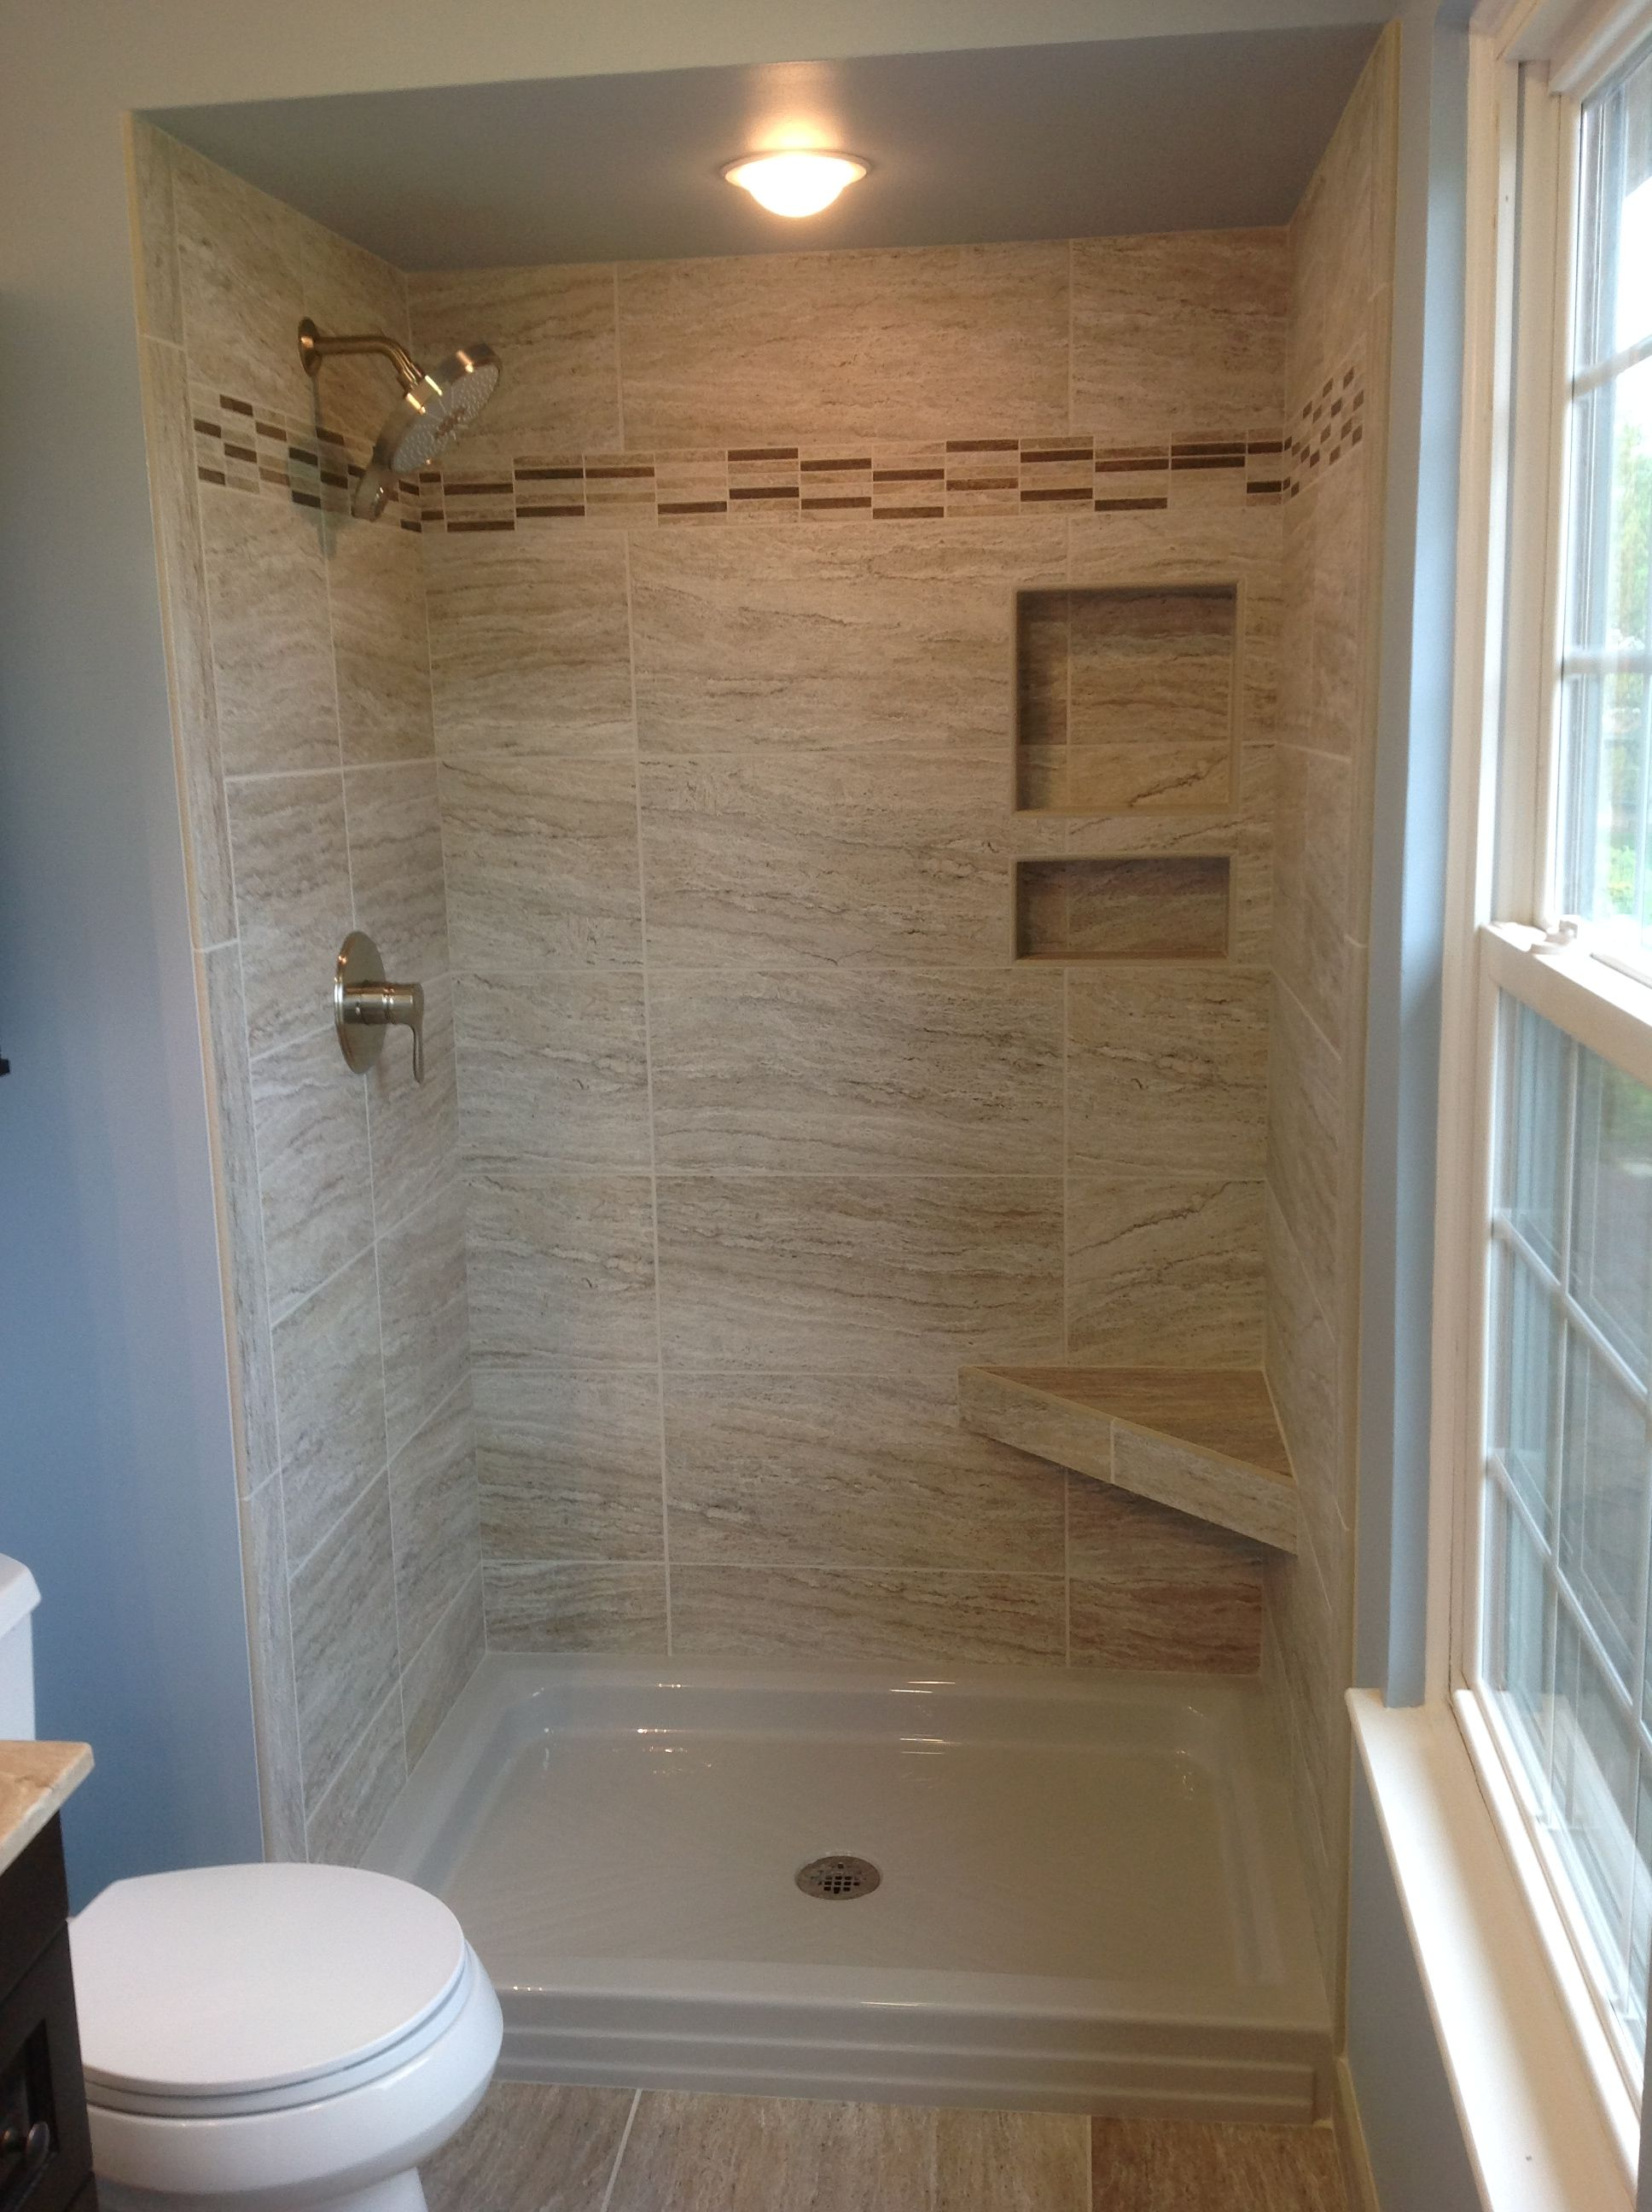 Marazzi Silk Elegant 12x24 Tiles In A 34x48 Shower Space